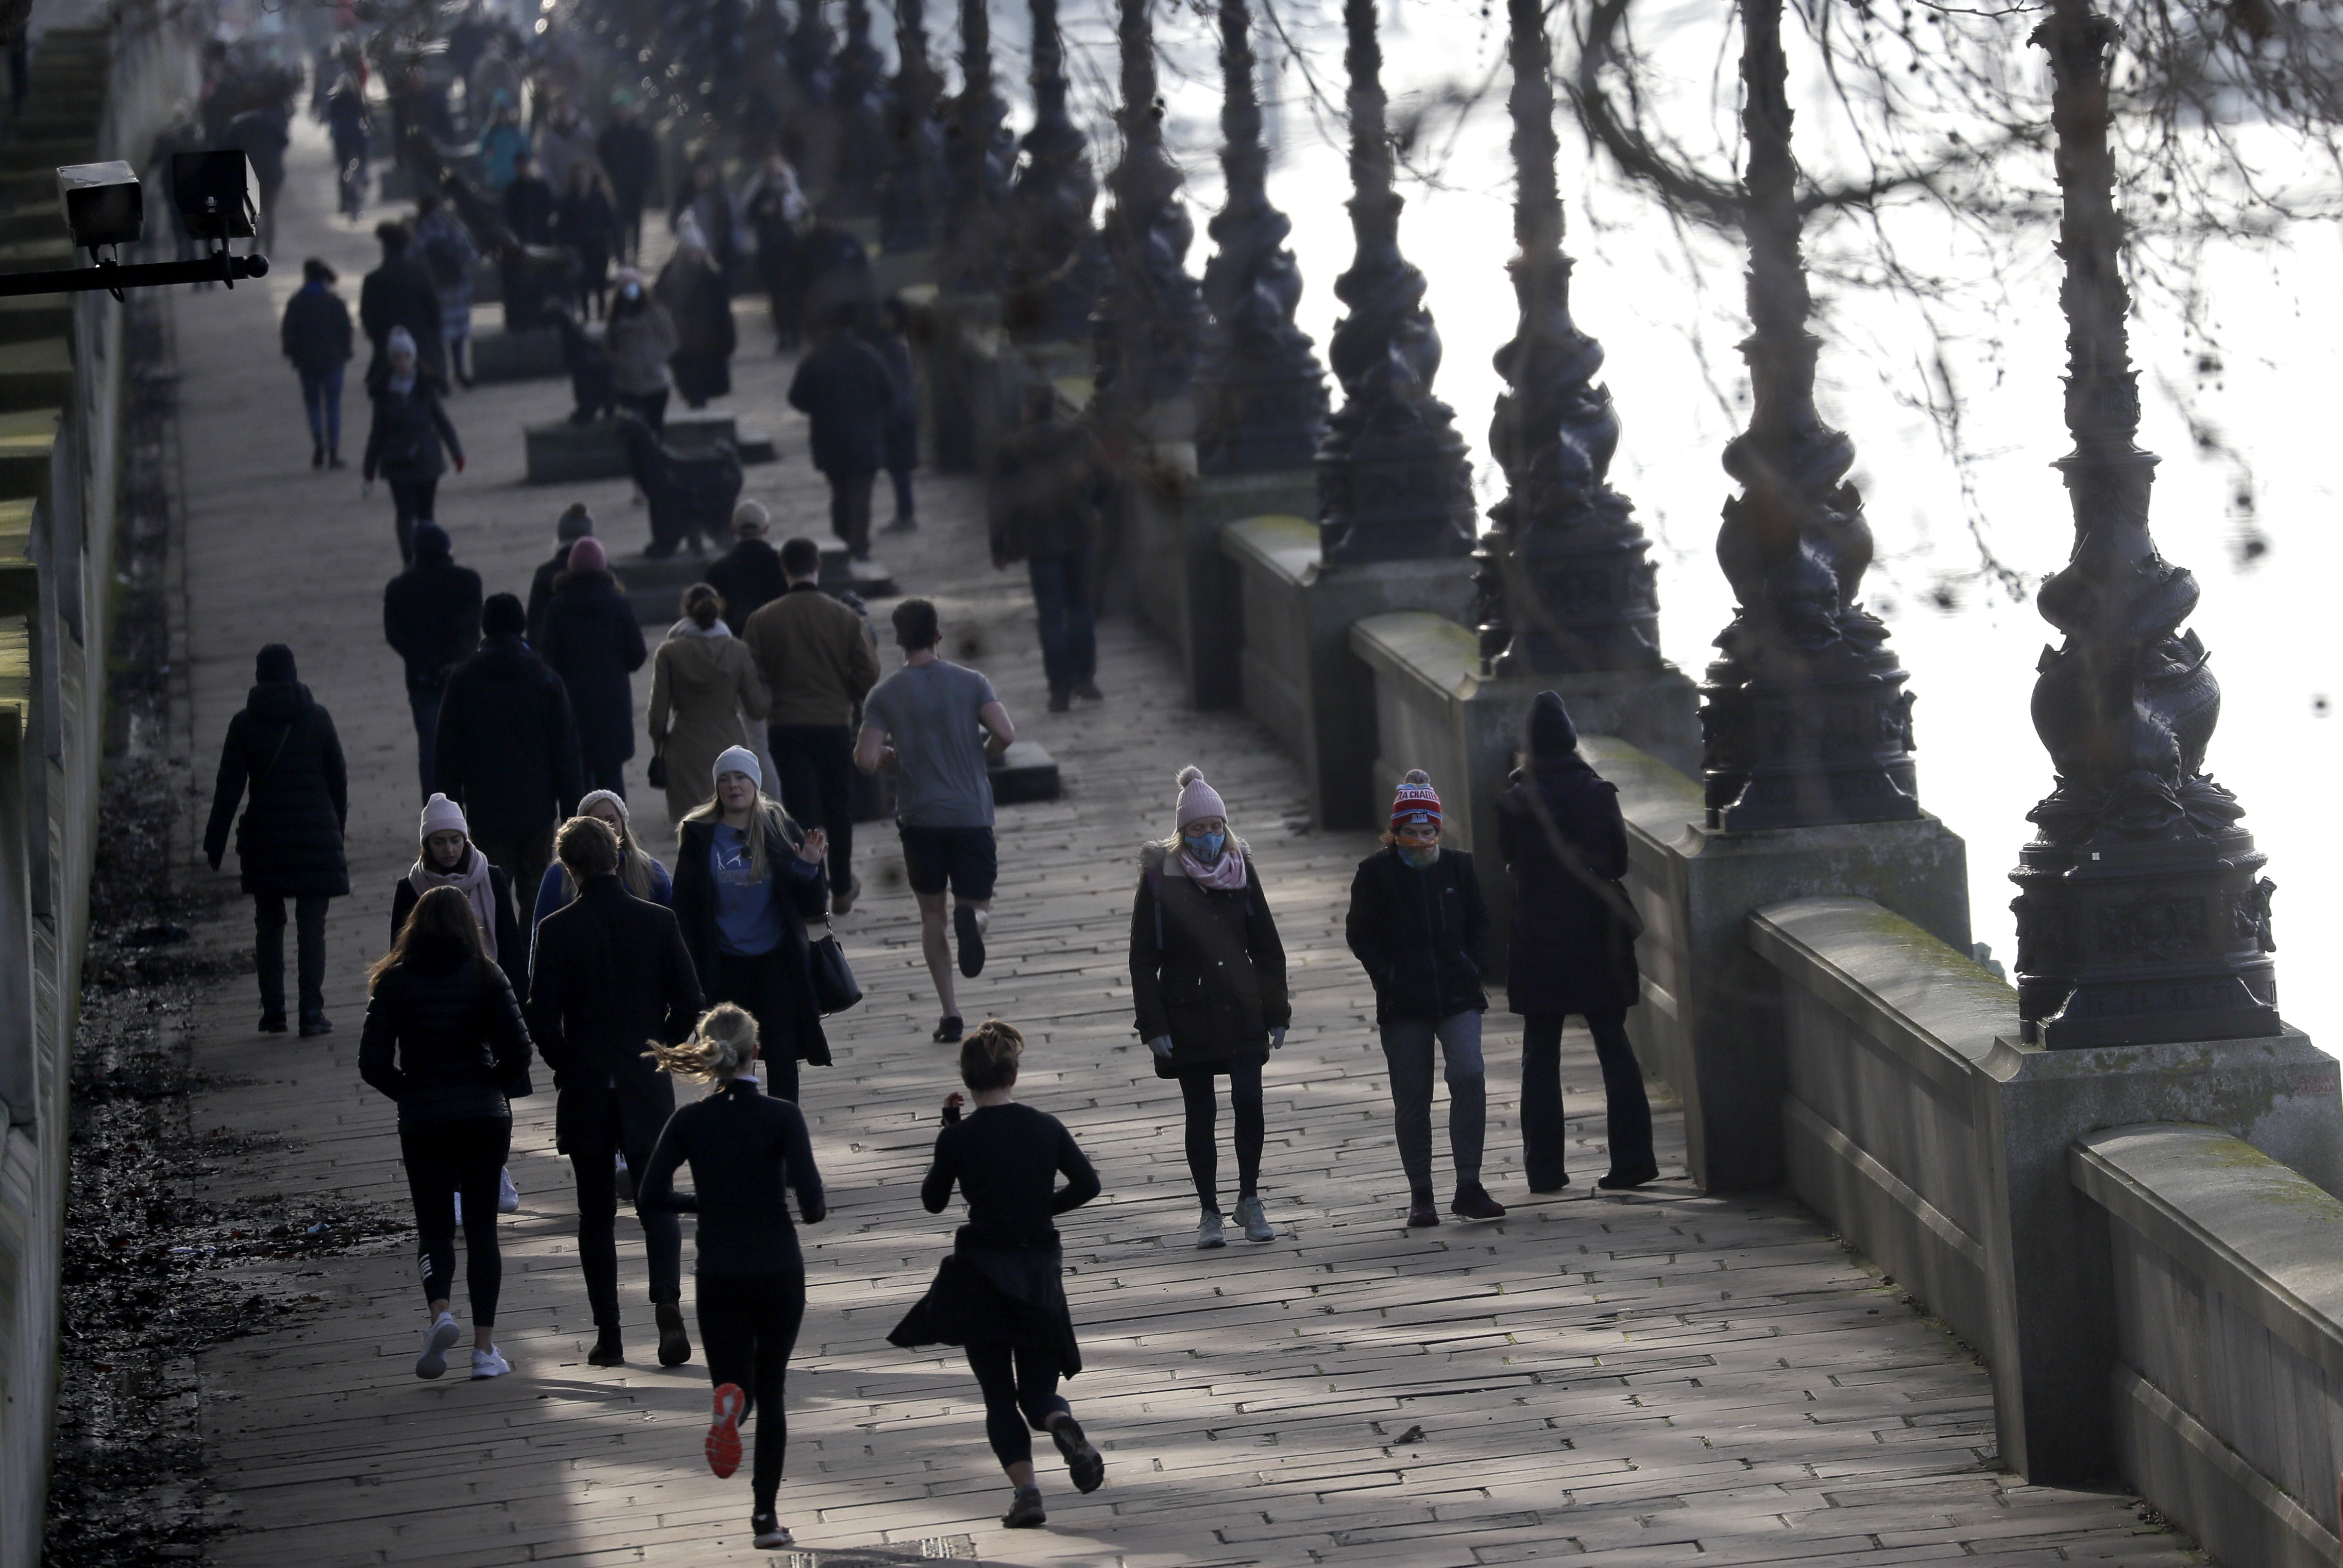 People exercise along the bank of the River Thames in London, Saturday, Jan. 23, 2021 during England's third national lockdown since the coronavirus outbreak began. The UK is under an indefinite national lockdown to curb the spread of the new variant, with nonessential shops, gyms and hairdressers closed, and people being told to stay at home. Photo: AP